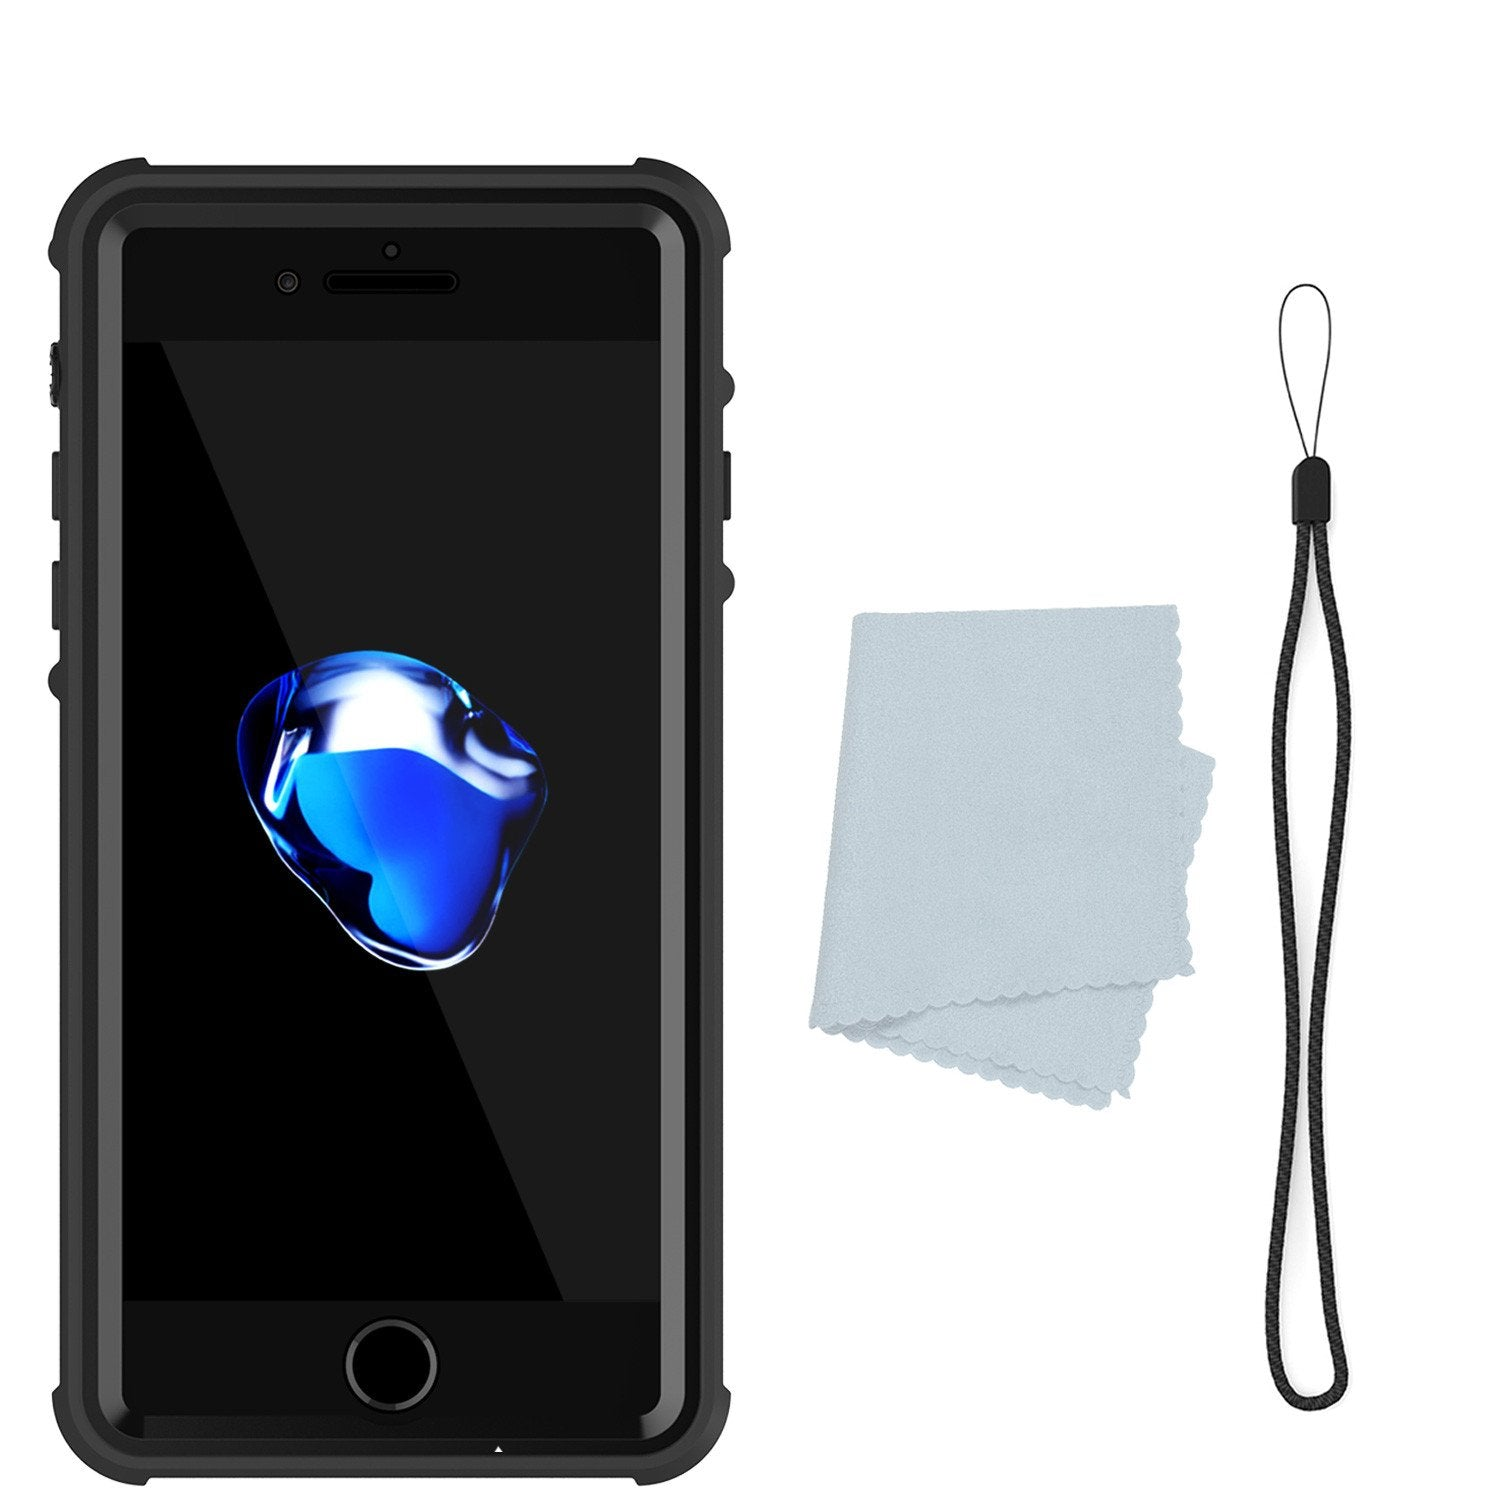 Apple iPhone 7 Waterproof Case, PUNKcase CRYSTAL Black W/ Attached Screen Protector  | Warranty